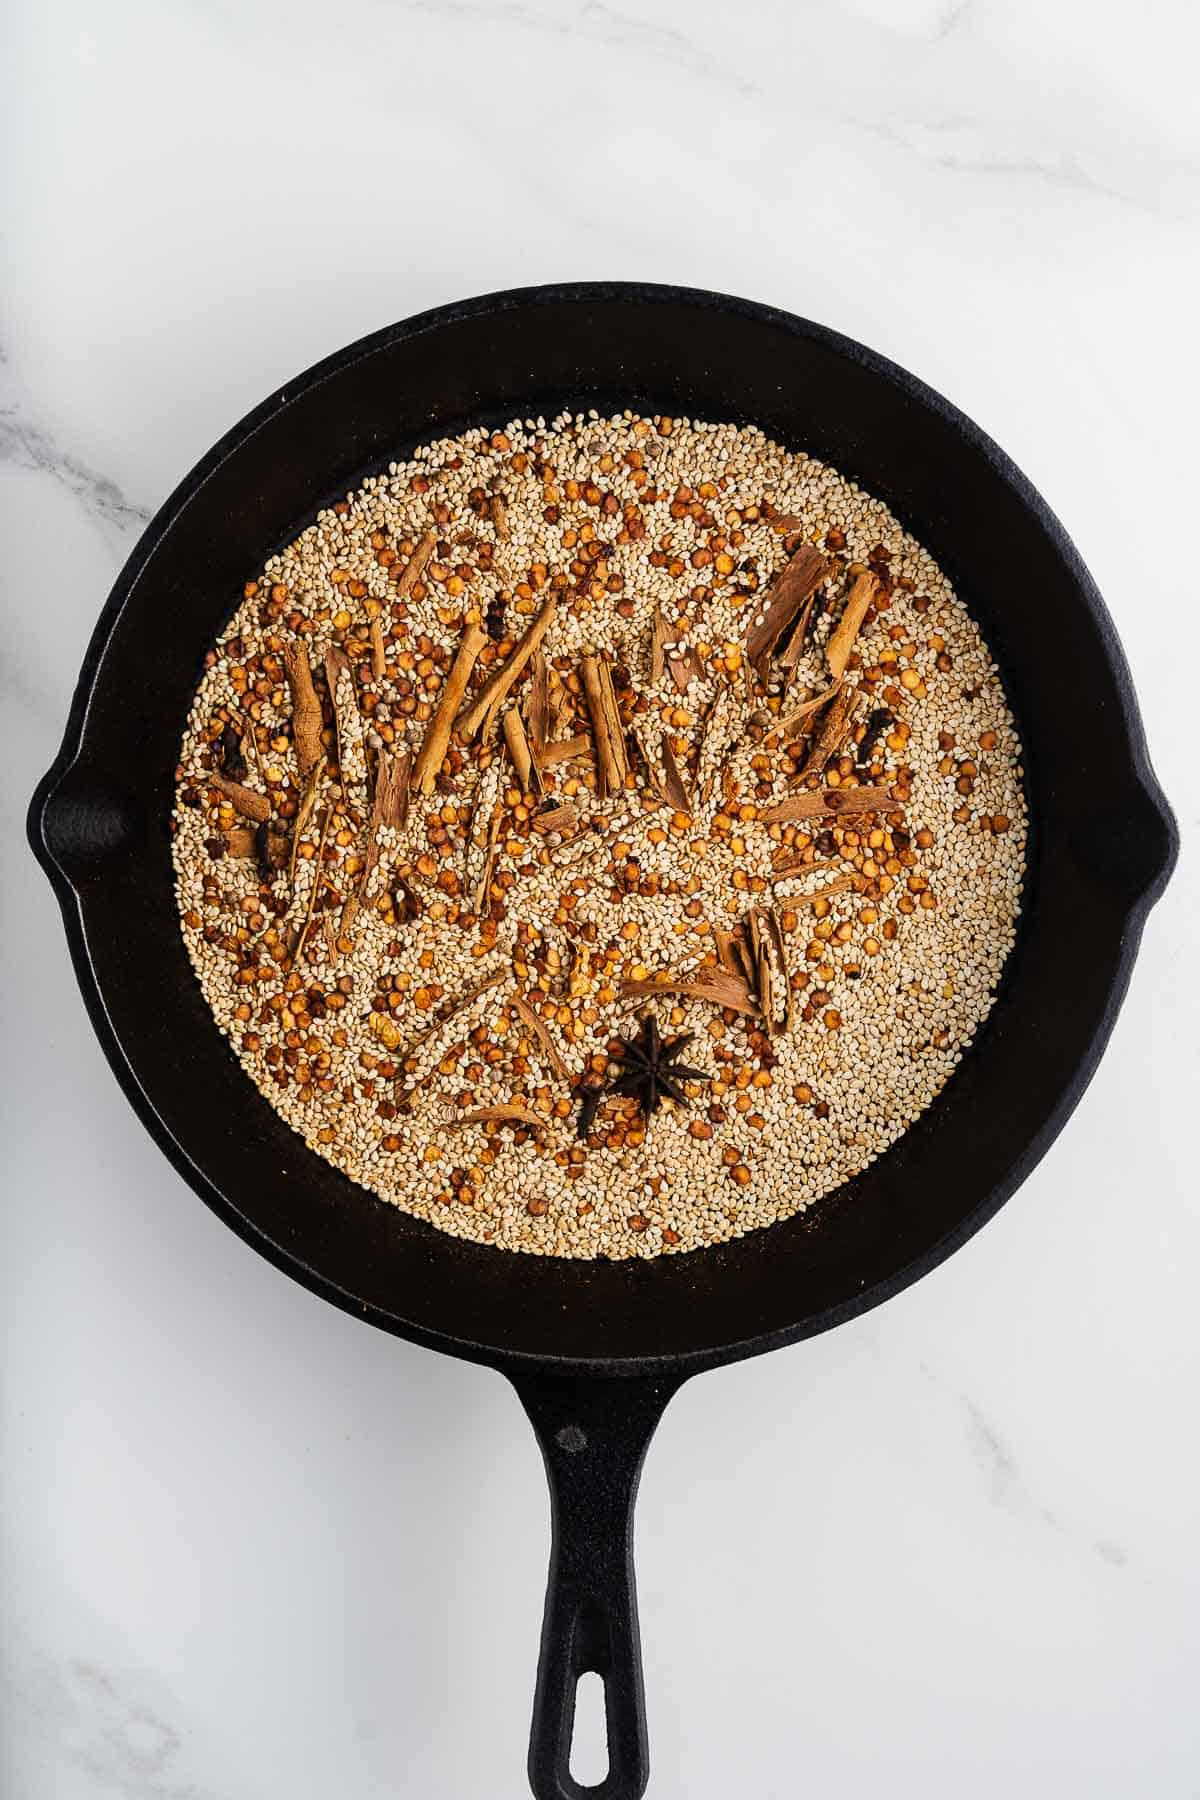 Toaste Spices, Sesame Seeds, and Chile Seeds in a Skillet